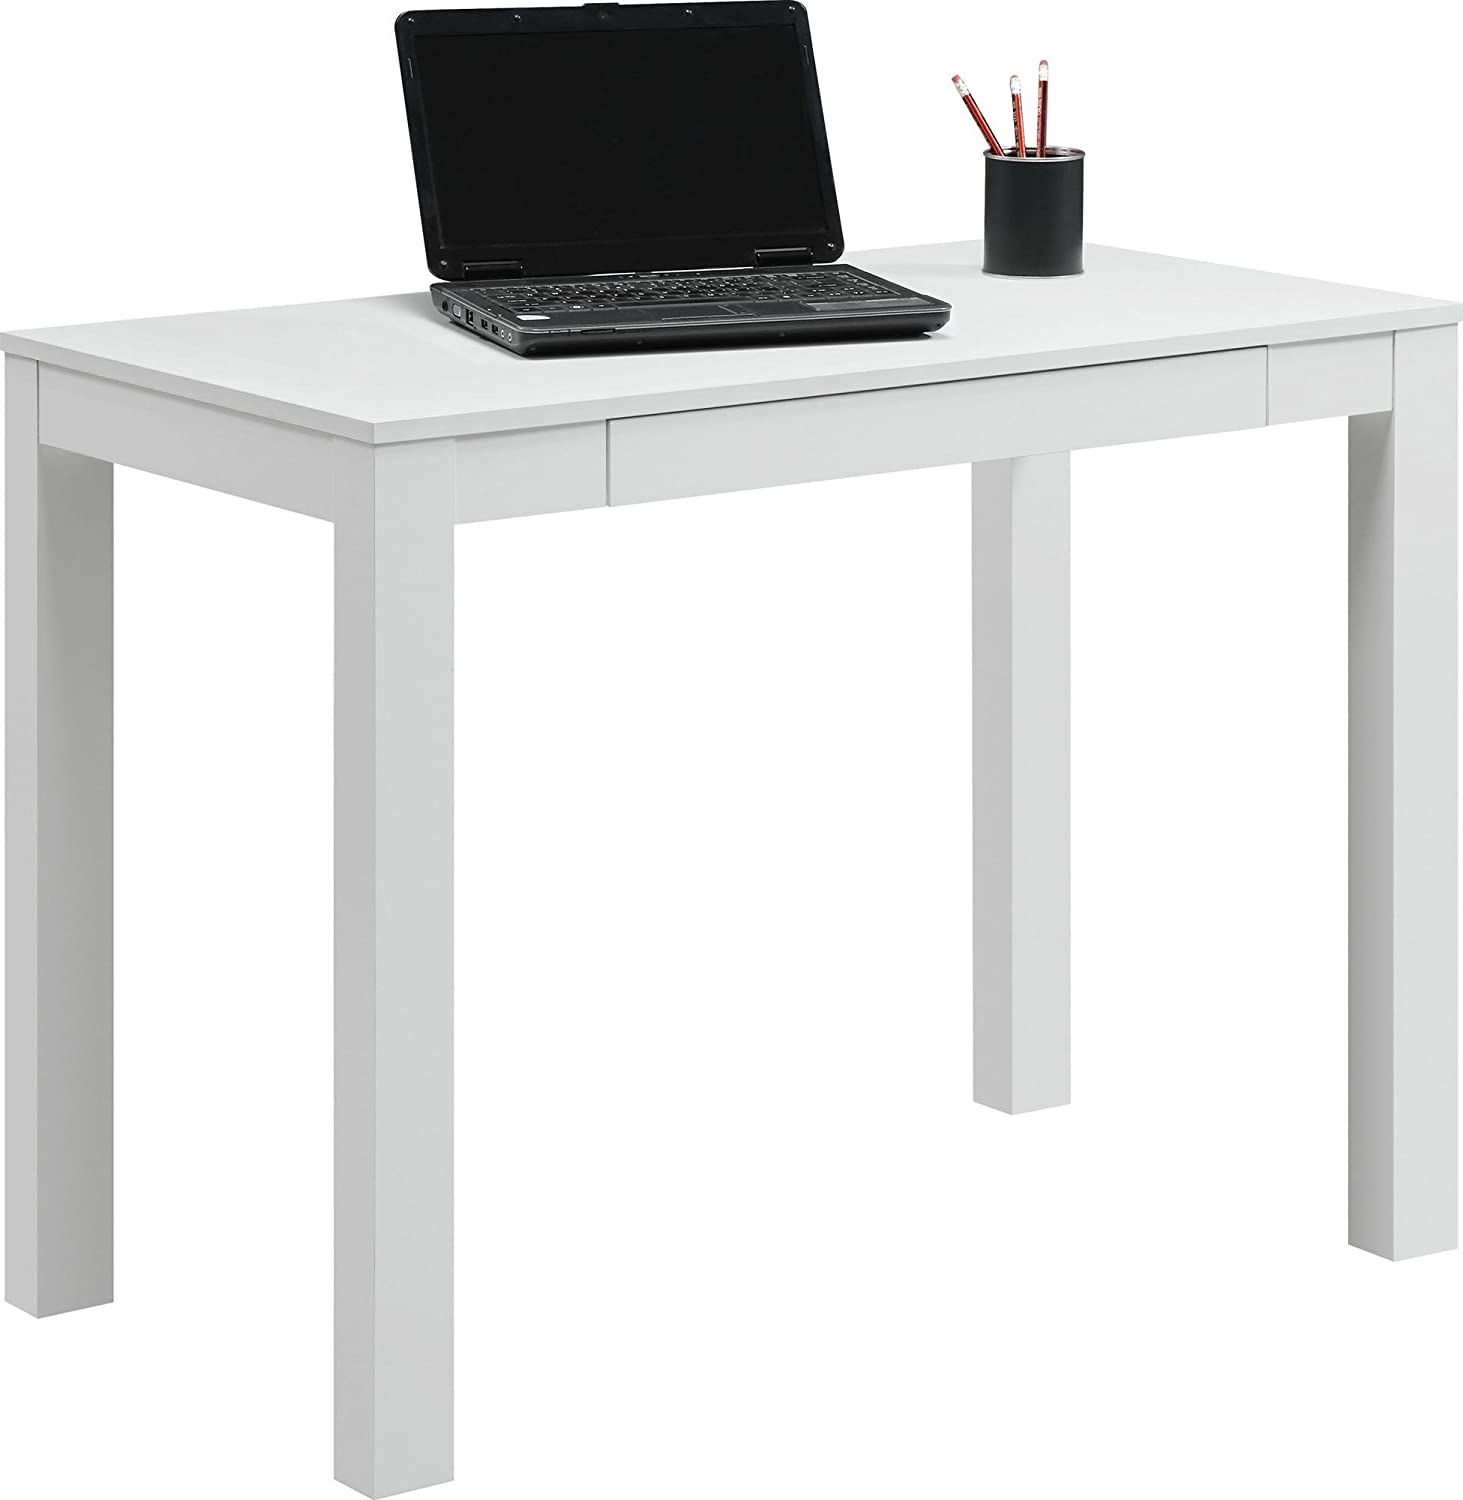 Amazon com  Ameriwood Home Parsons Desk with Drawer  White  Kitchen   Dining. Amazon com  Ameriwood Home Parsons Desk with Drawer  White